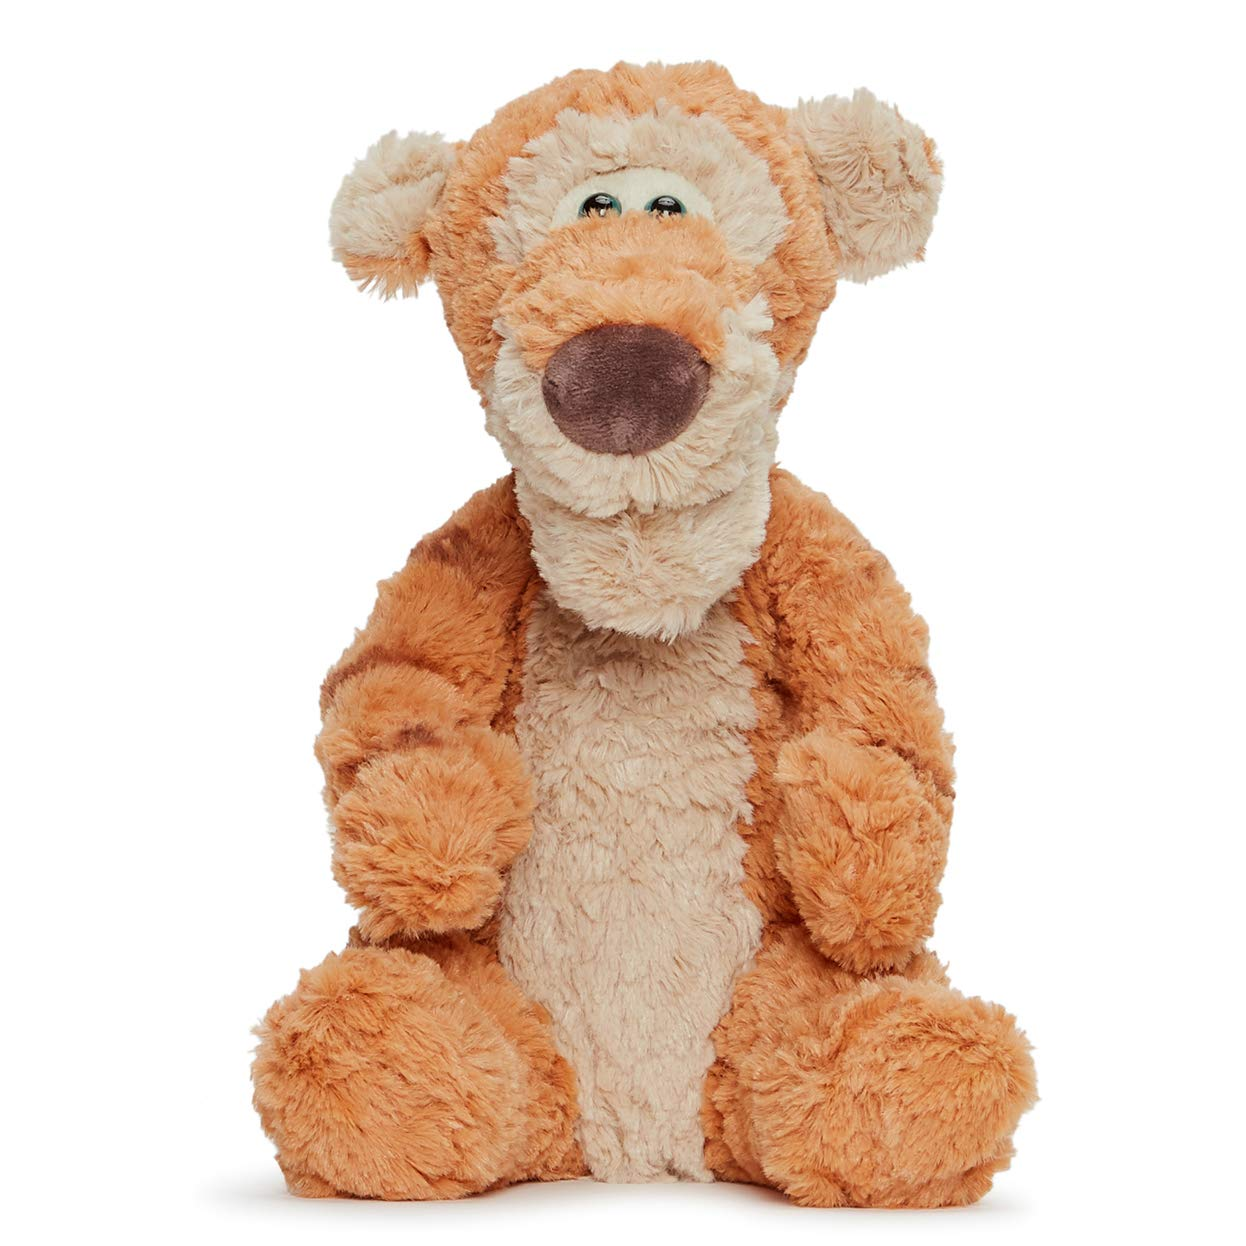 Disney Christopher Robin Collection Winnie The Pooh Tigger Soft Toy - 25cm by Posh Paws